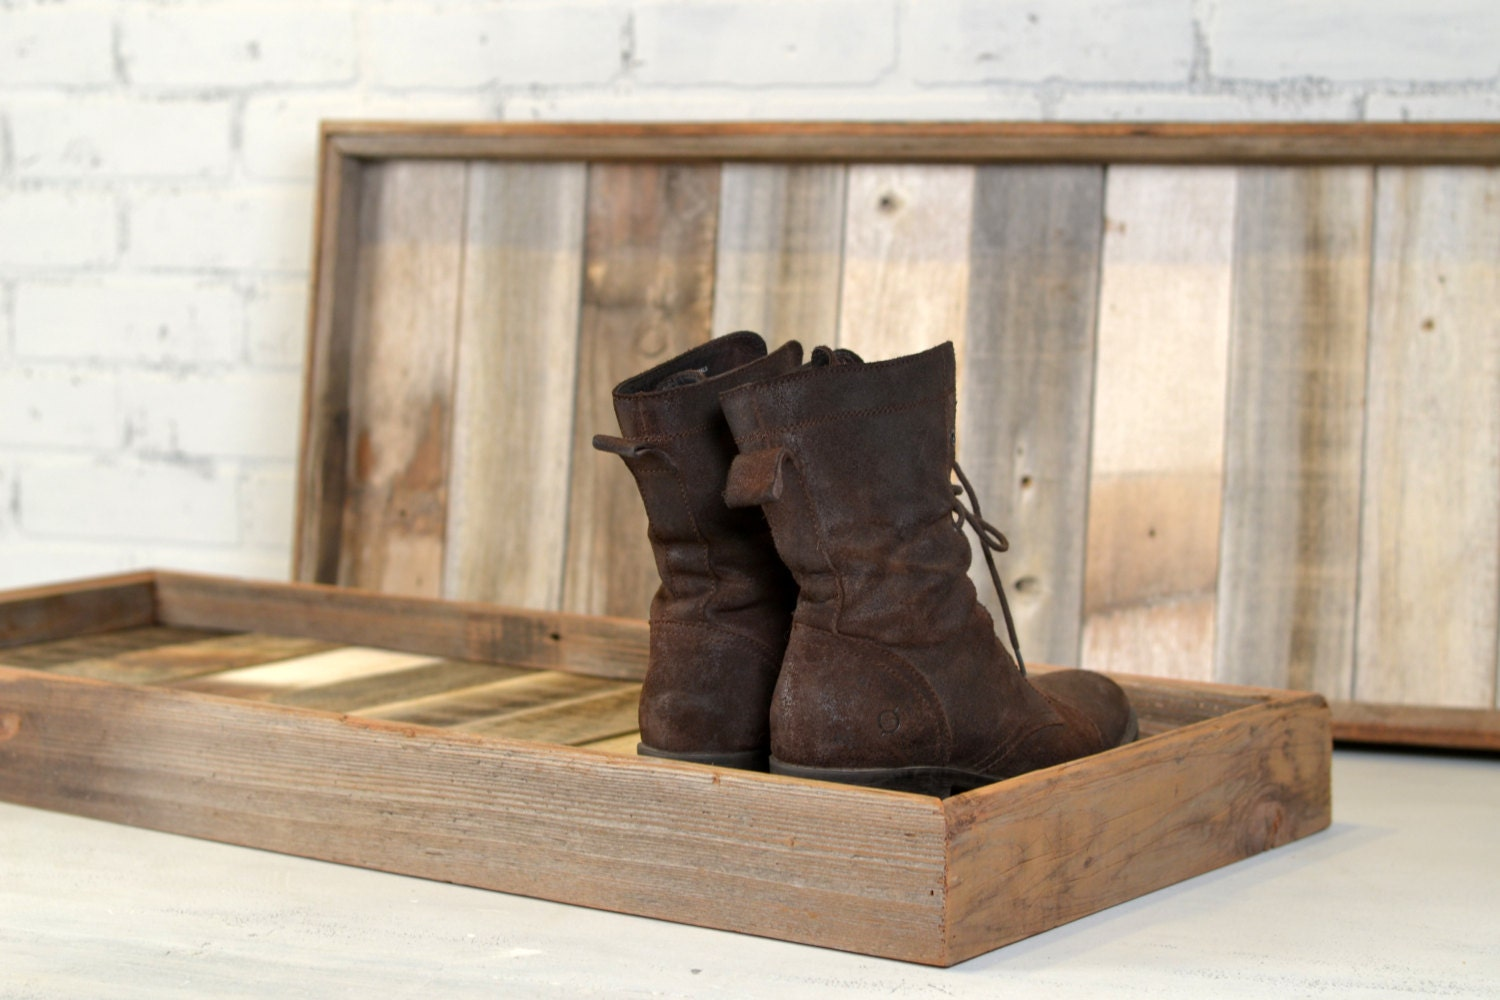 Picture of: Boot Tray Made From Reclaimed Wood Shoe Storage Entryway Organization 36 Inches Long By 15 Inches Wide In Stock Same Day Shipping